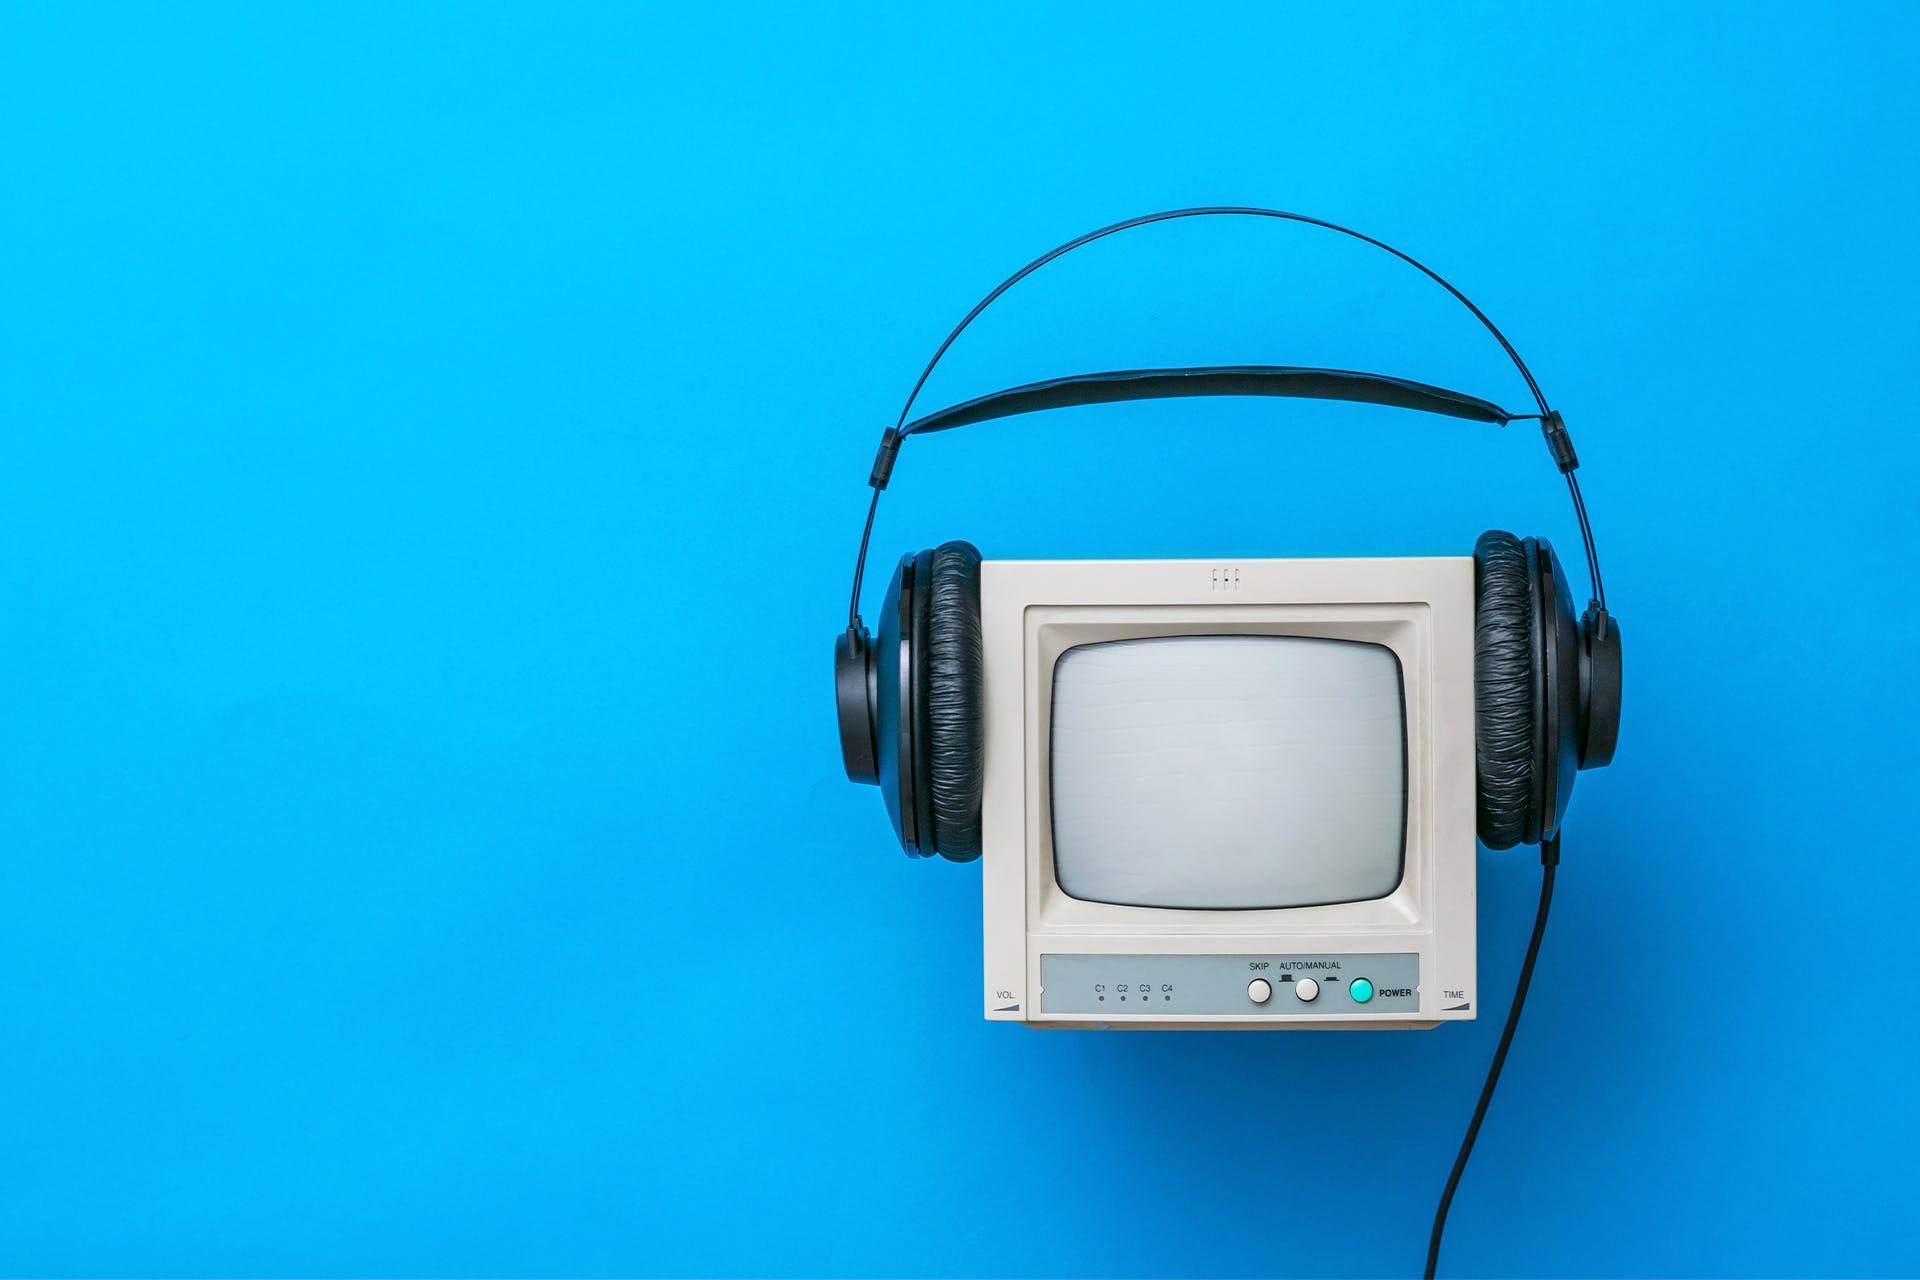 Old fashioned computer with headphones. Blog post: 14 proven PR KPIs that matter and how to track them